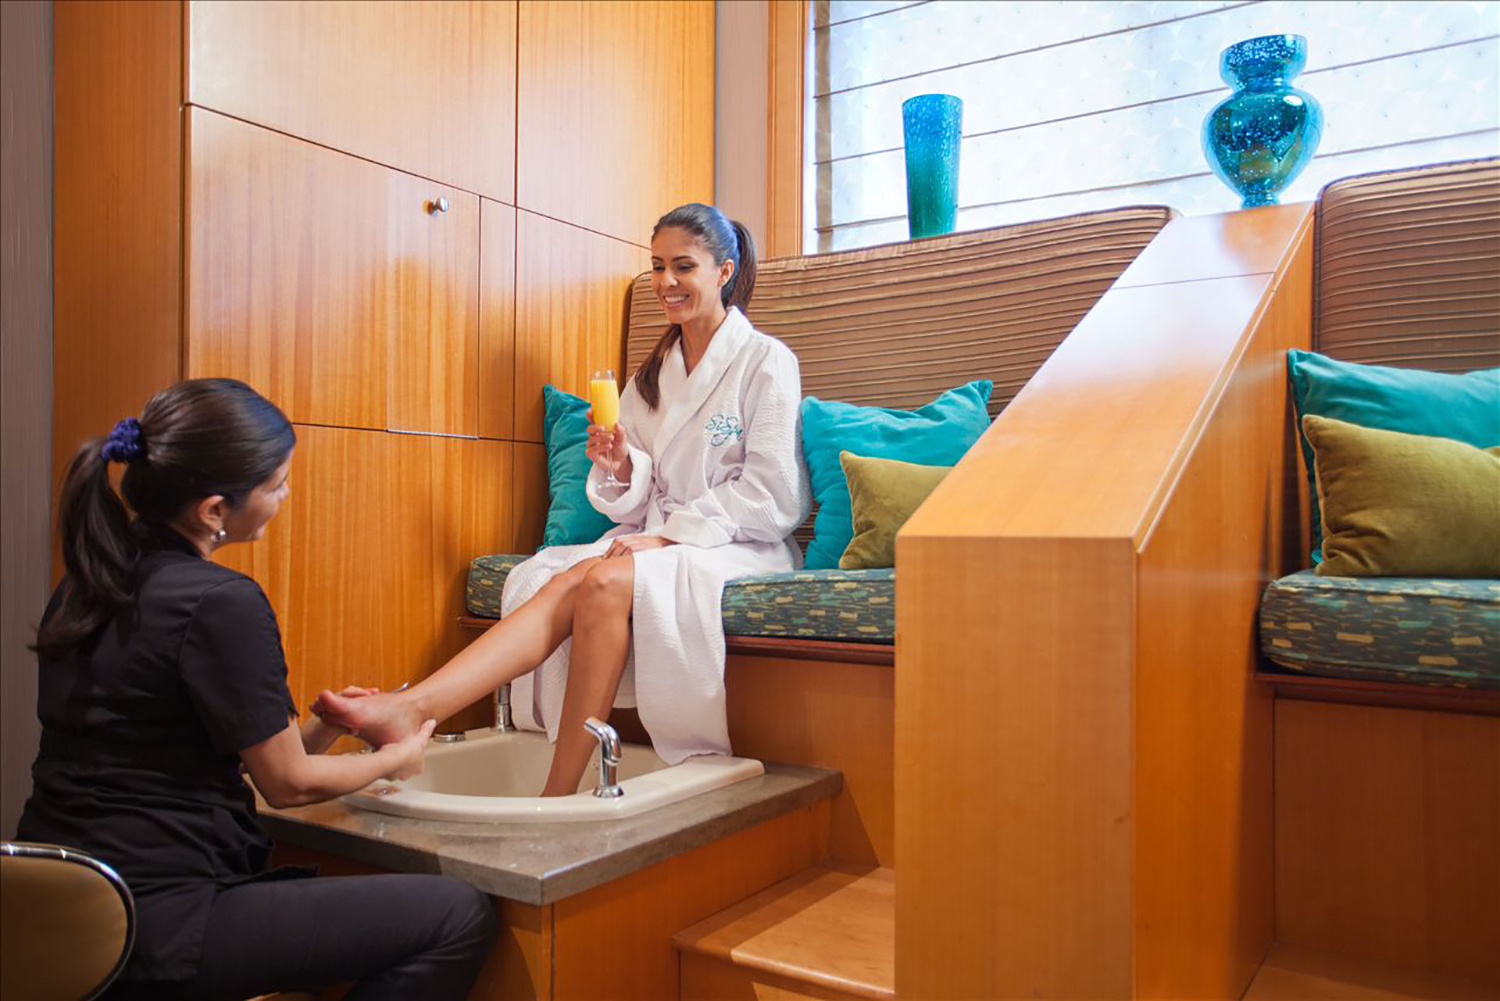 The spa also has separate manicure and pedicure areas.